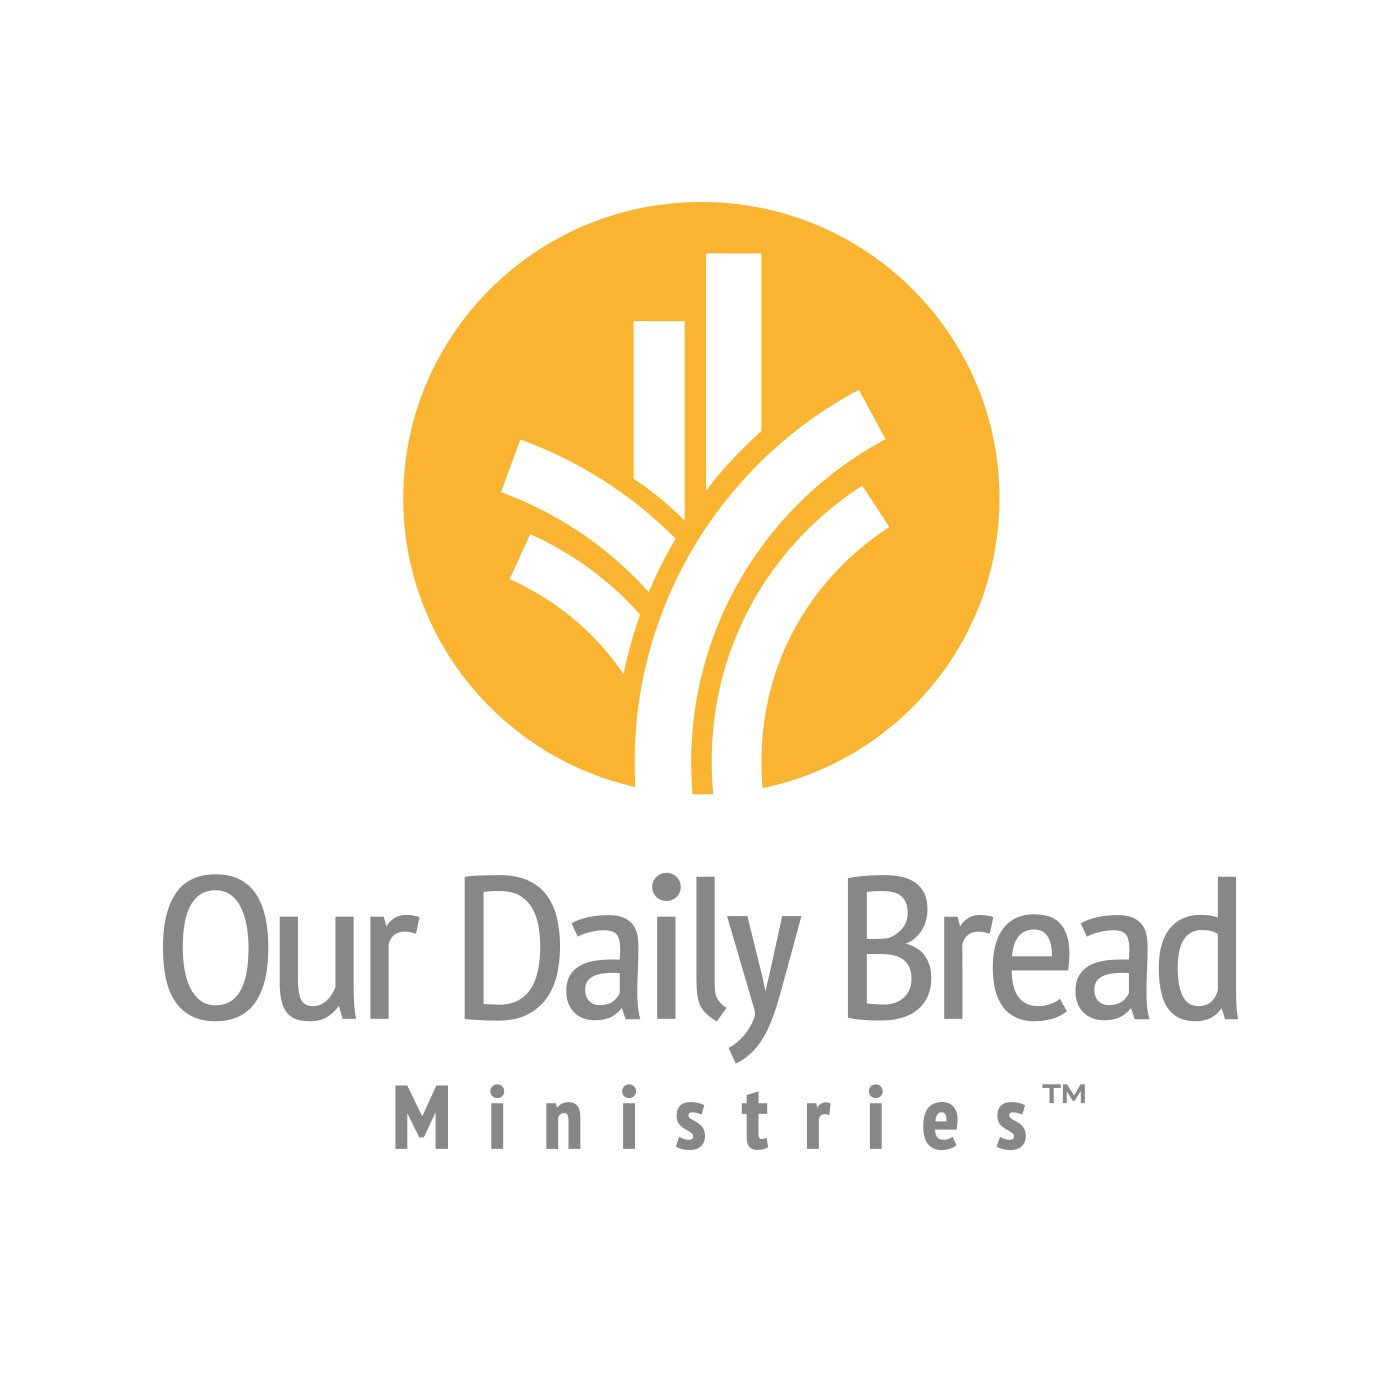 Our Daily Bread 25th February 2020